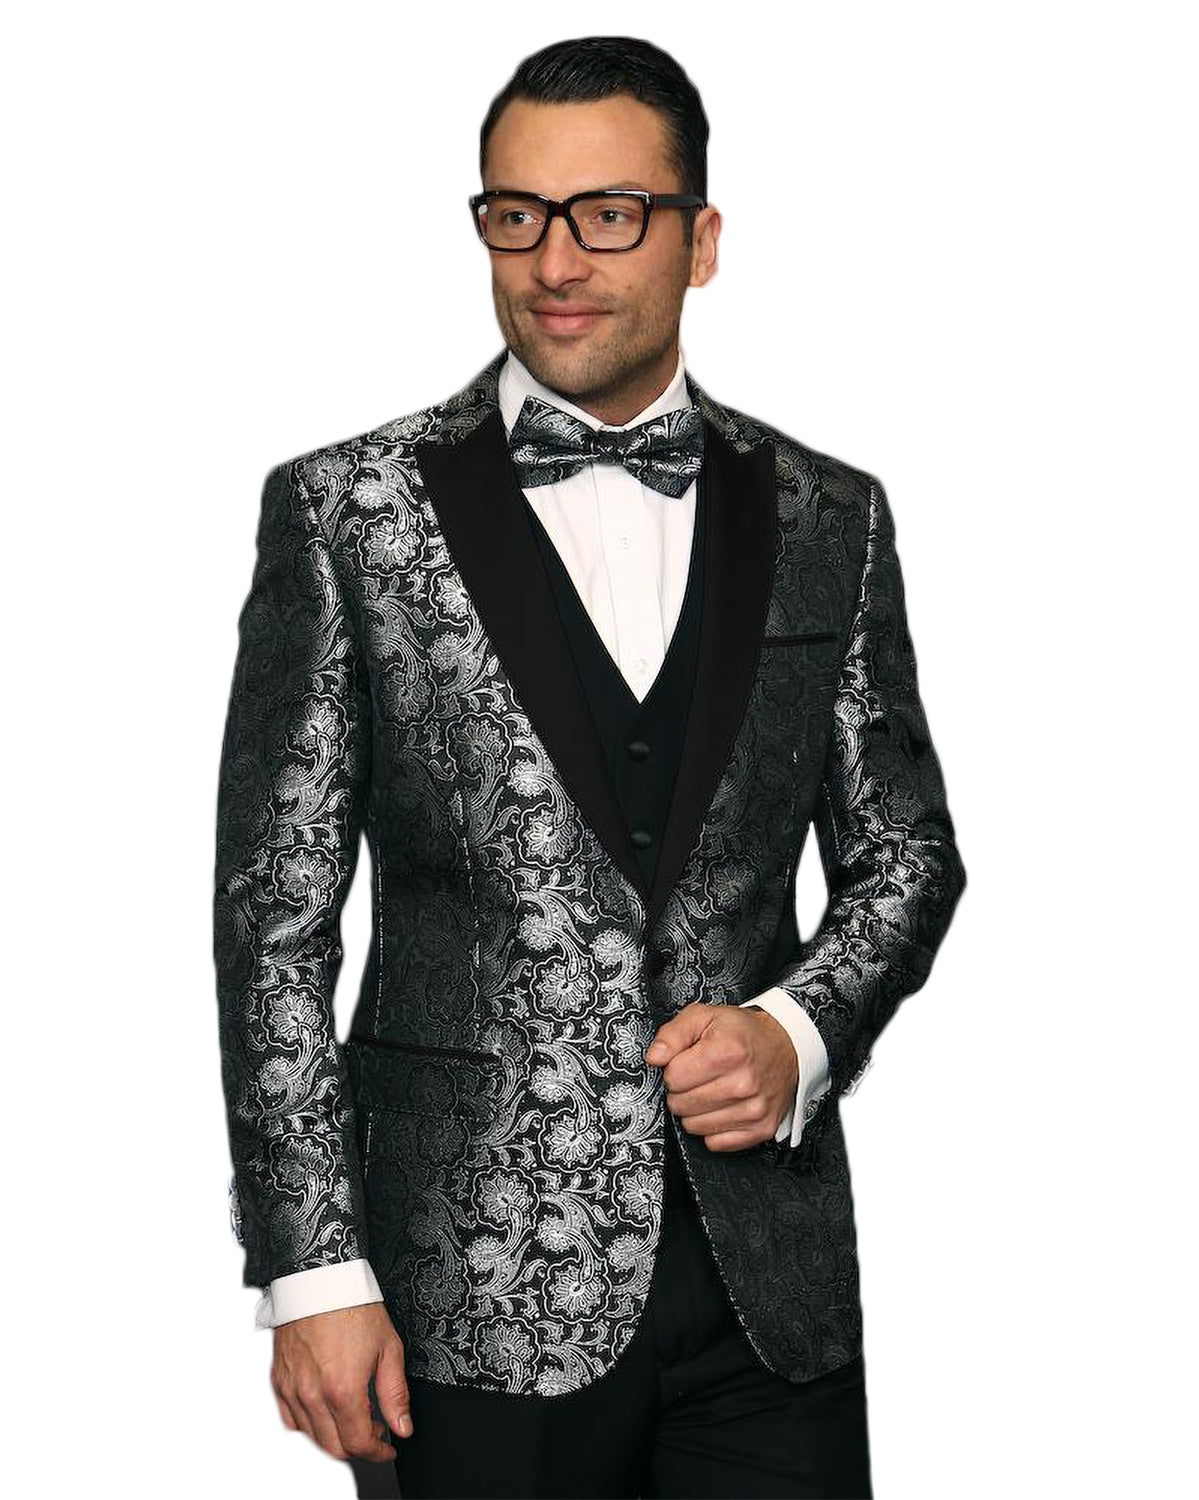 Black & Grey Paisley Dinner Jacket Tuxedo Rental - Rainwater's Men's Clothing and Tuxedo Rental